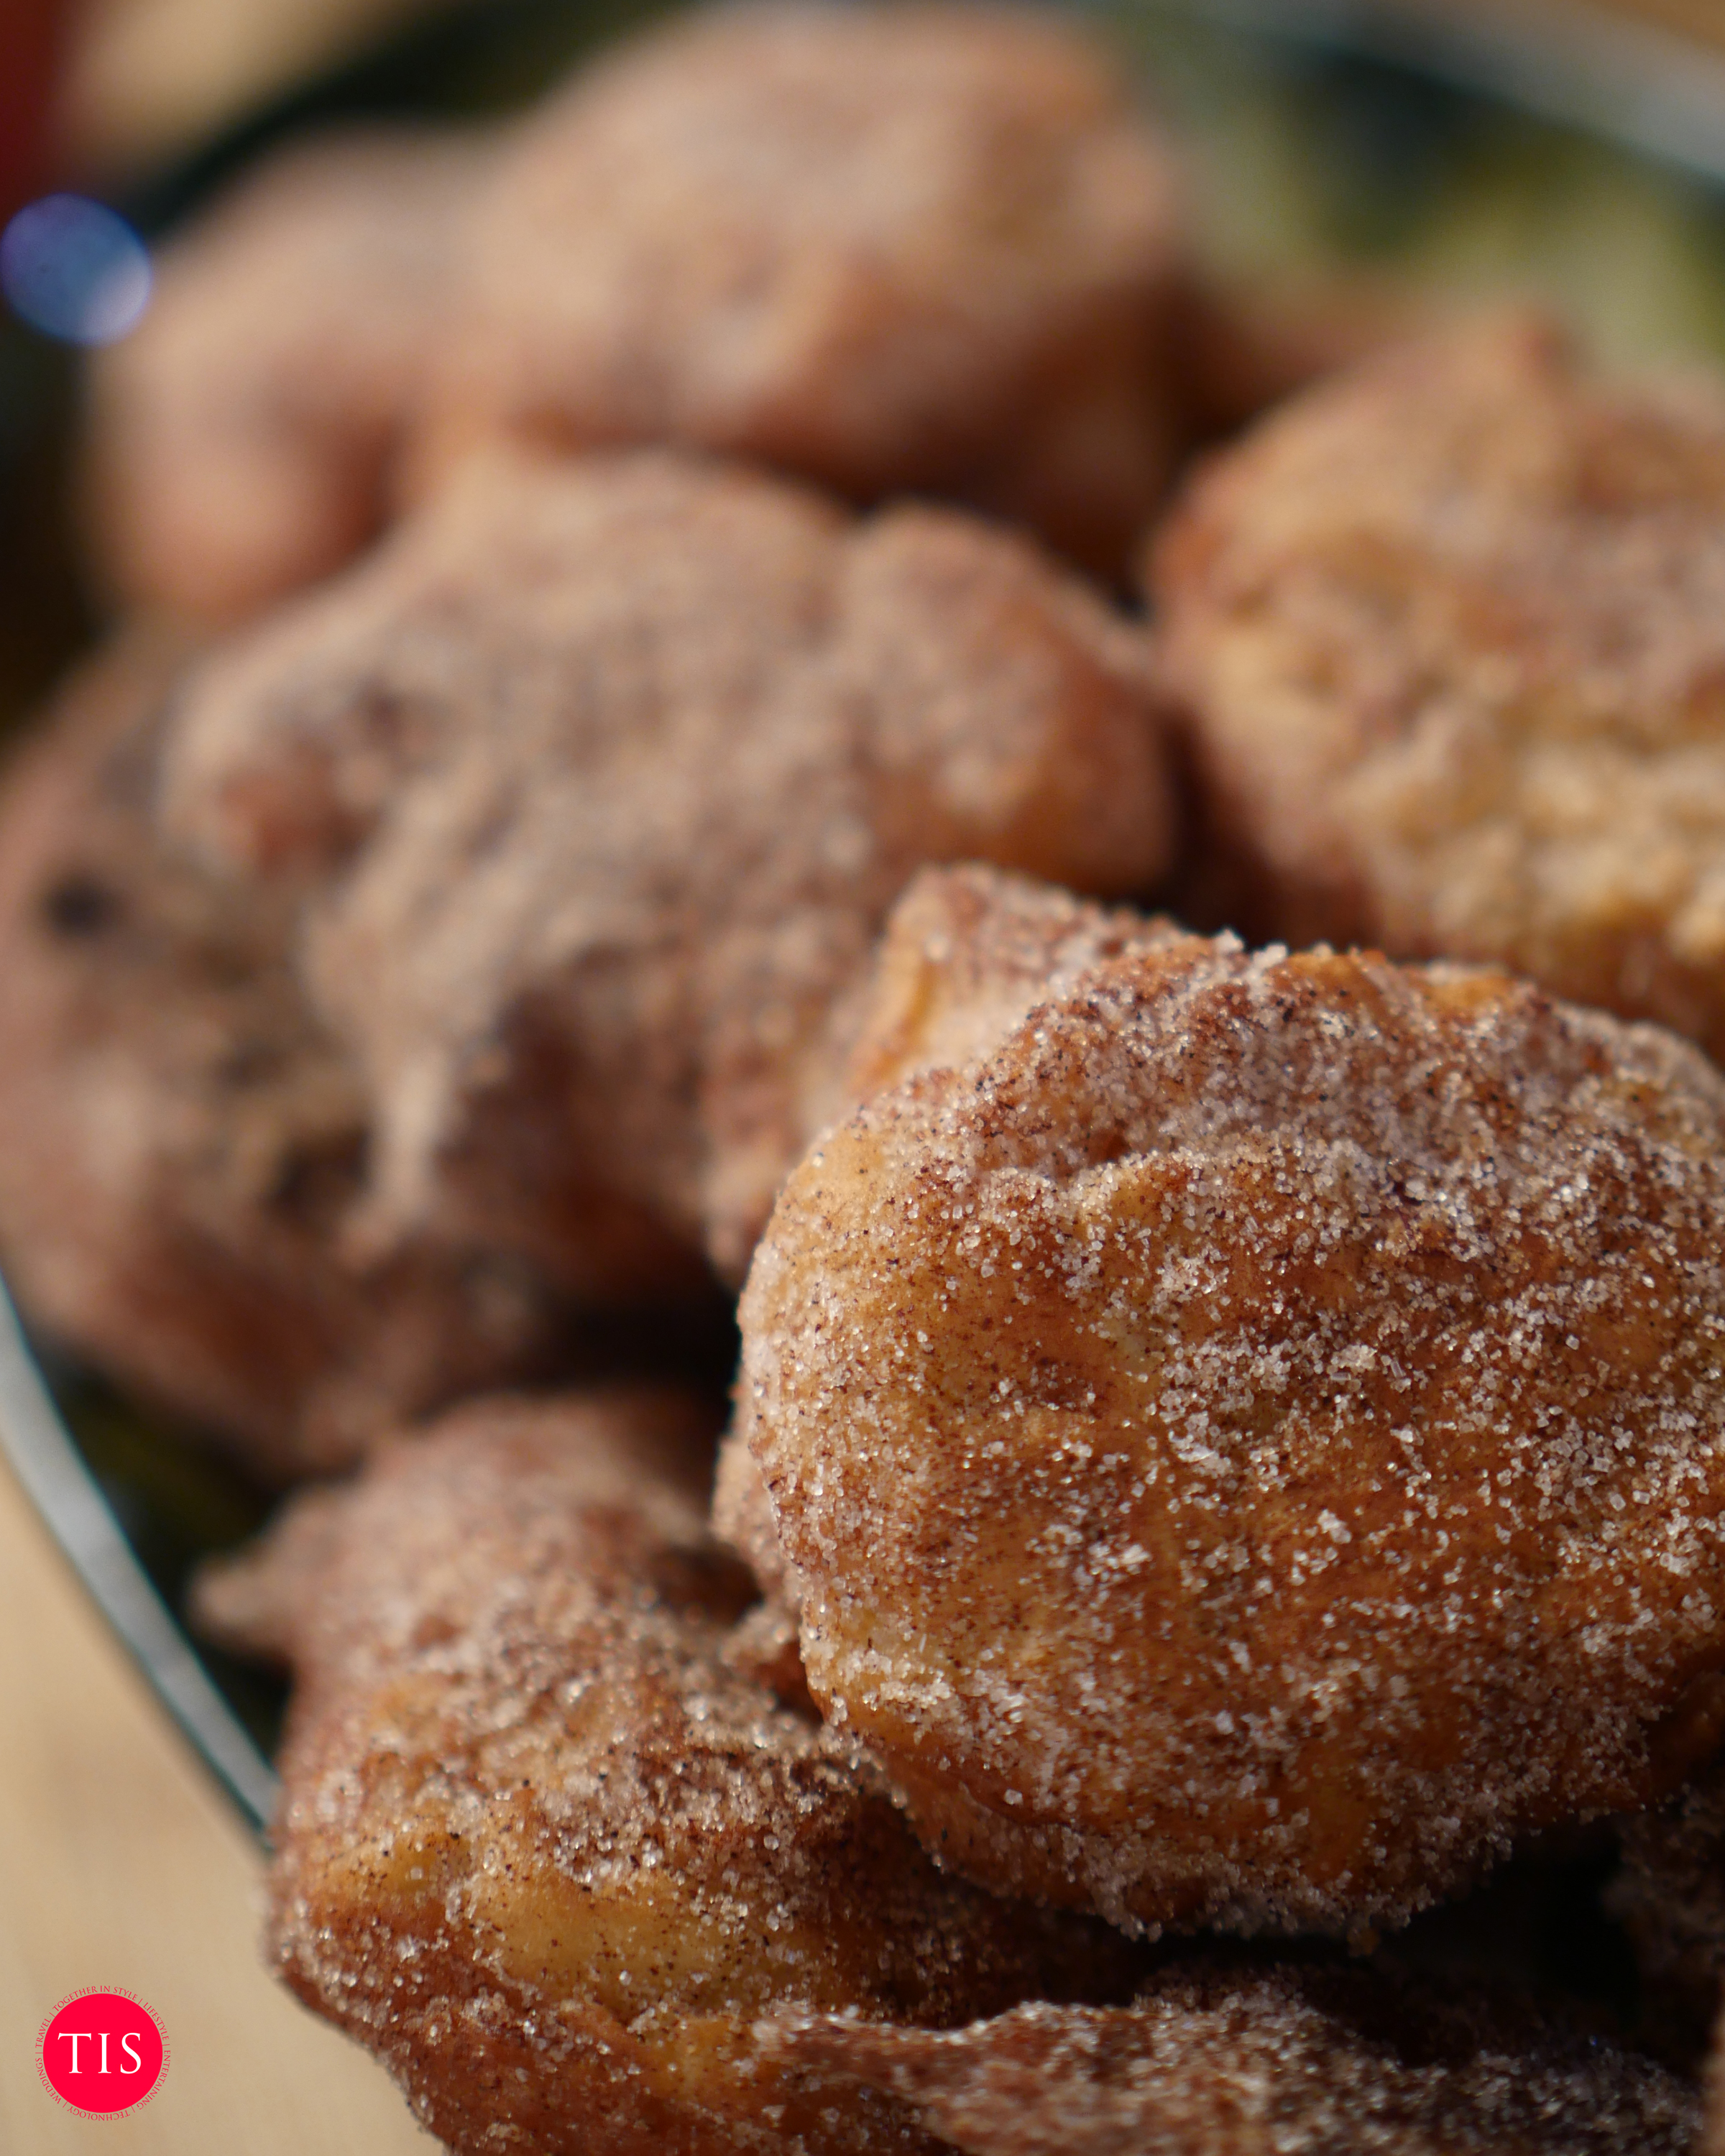 Apple Fritters are perfect when rolled in Sugar and Cinnamon.